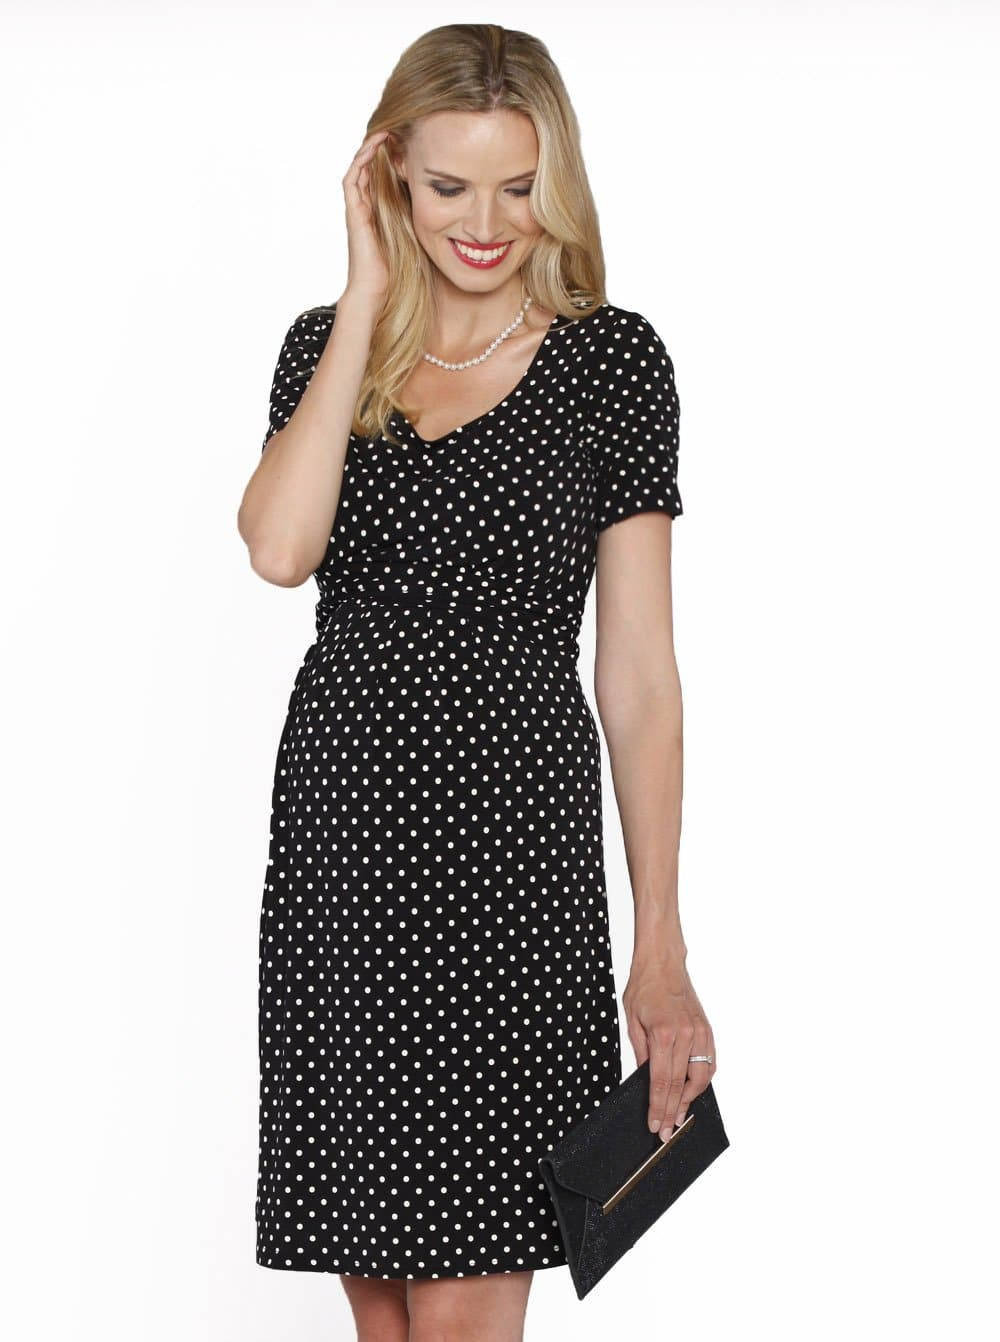 Empire Waistline Nursing Dress in Black & White Dots